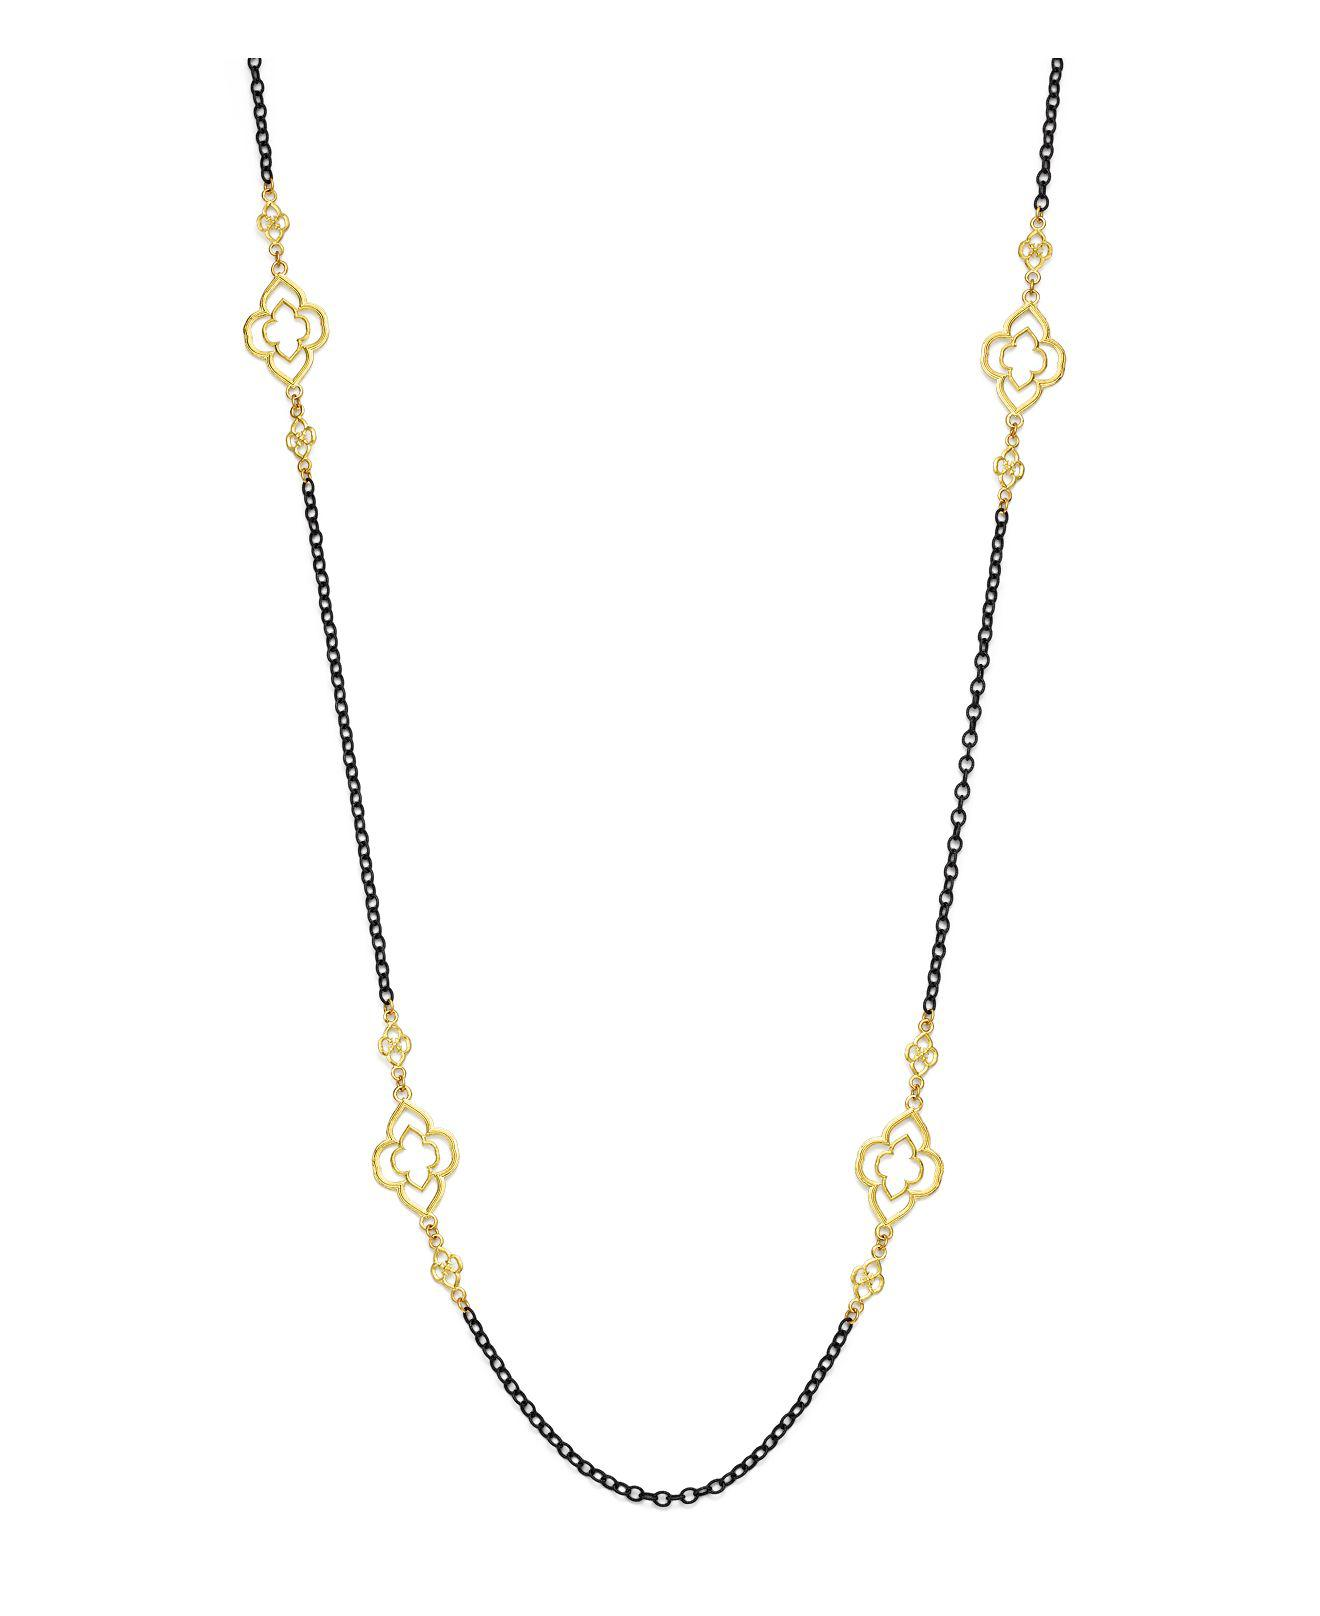 Armenta Heraldry Scroll Cable Chain Necklace, 37